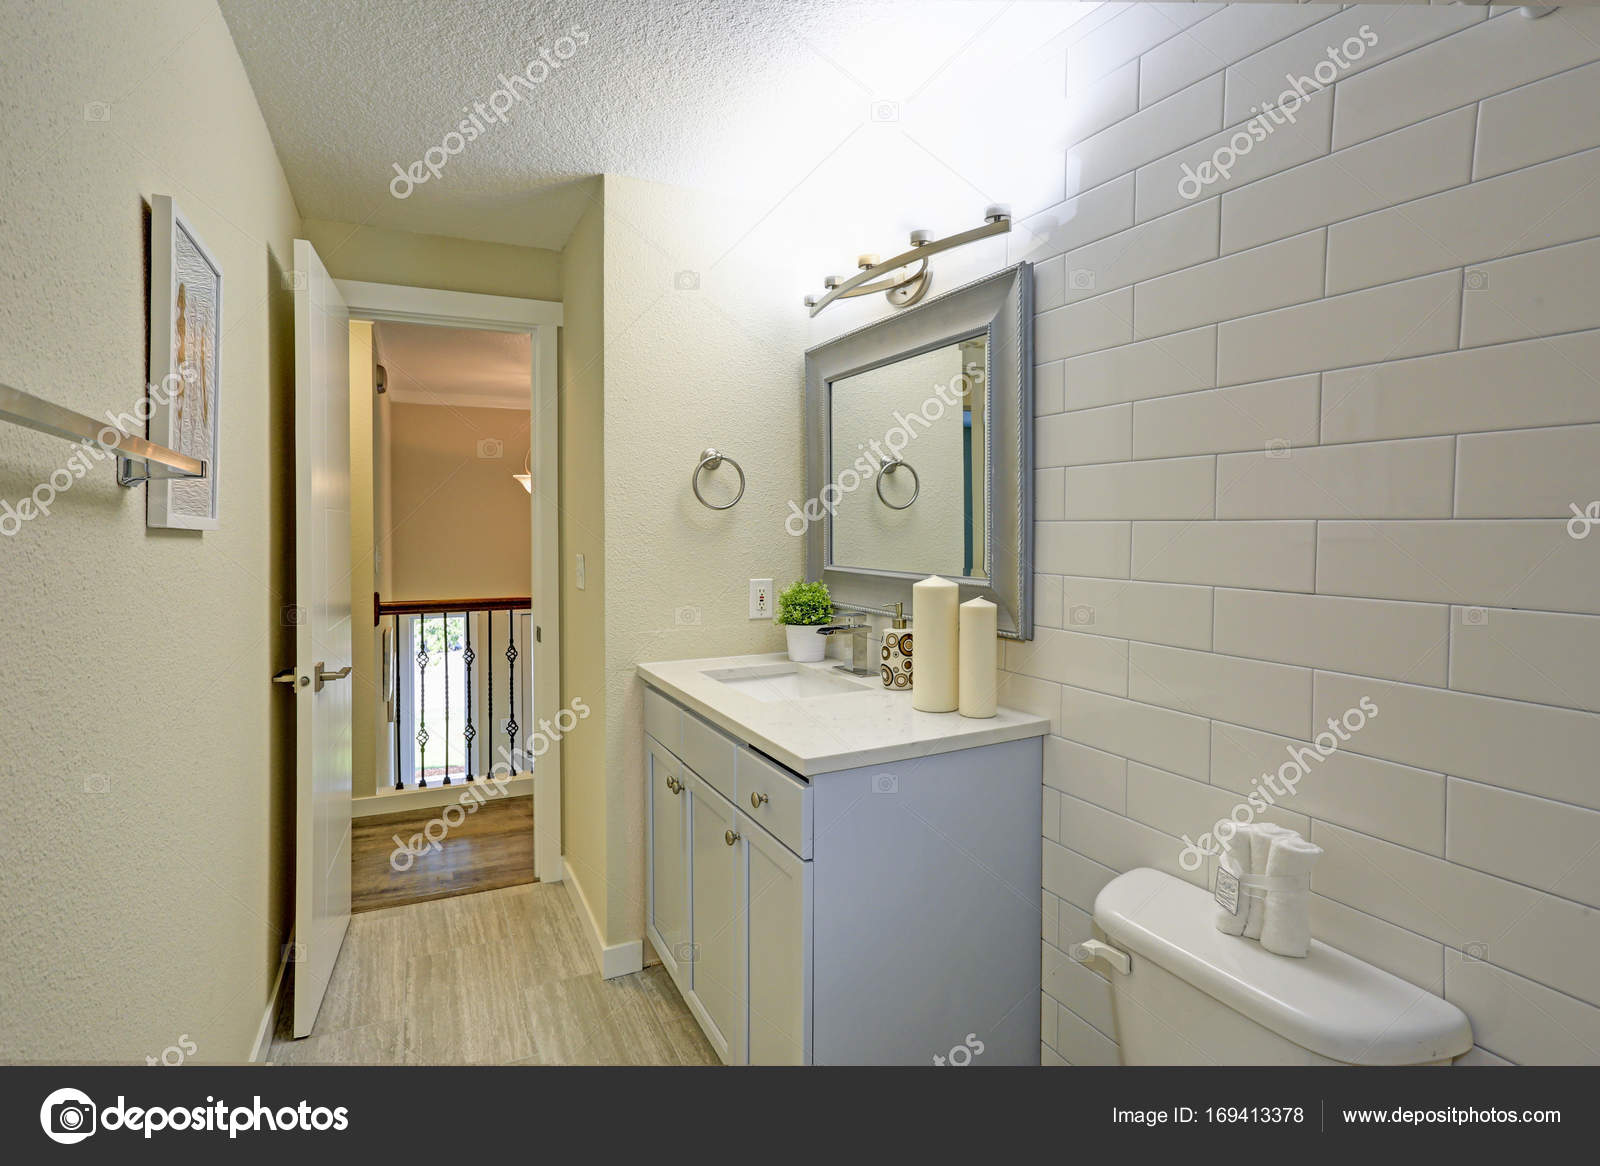 Freshly renovated bathroom features light blue bathroom vanity stock photo